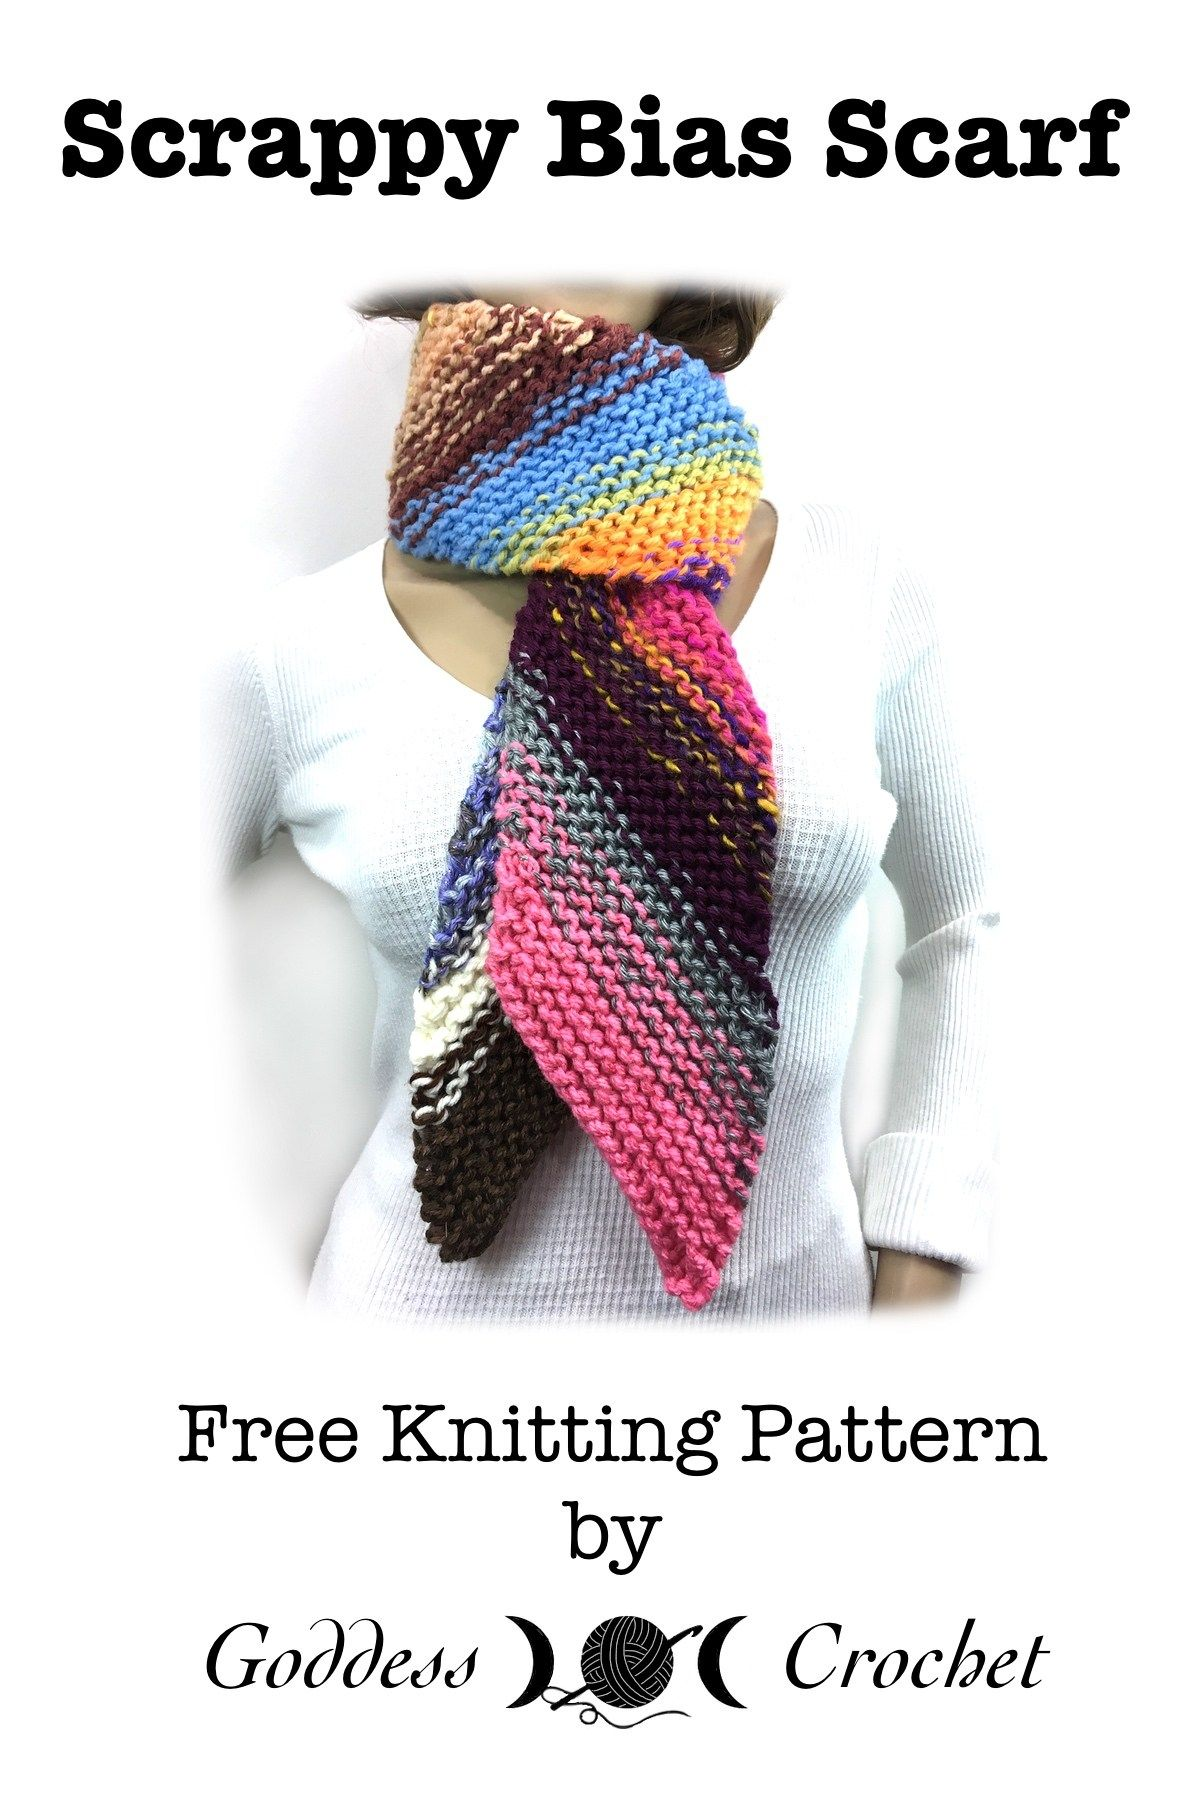 Scrappy Bias Scarf - Free Knitting Pattern | Creative Crafts ...